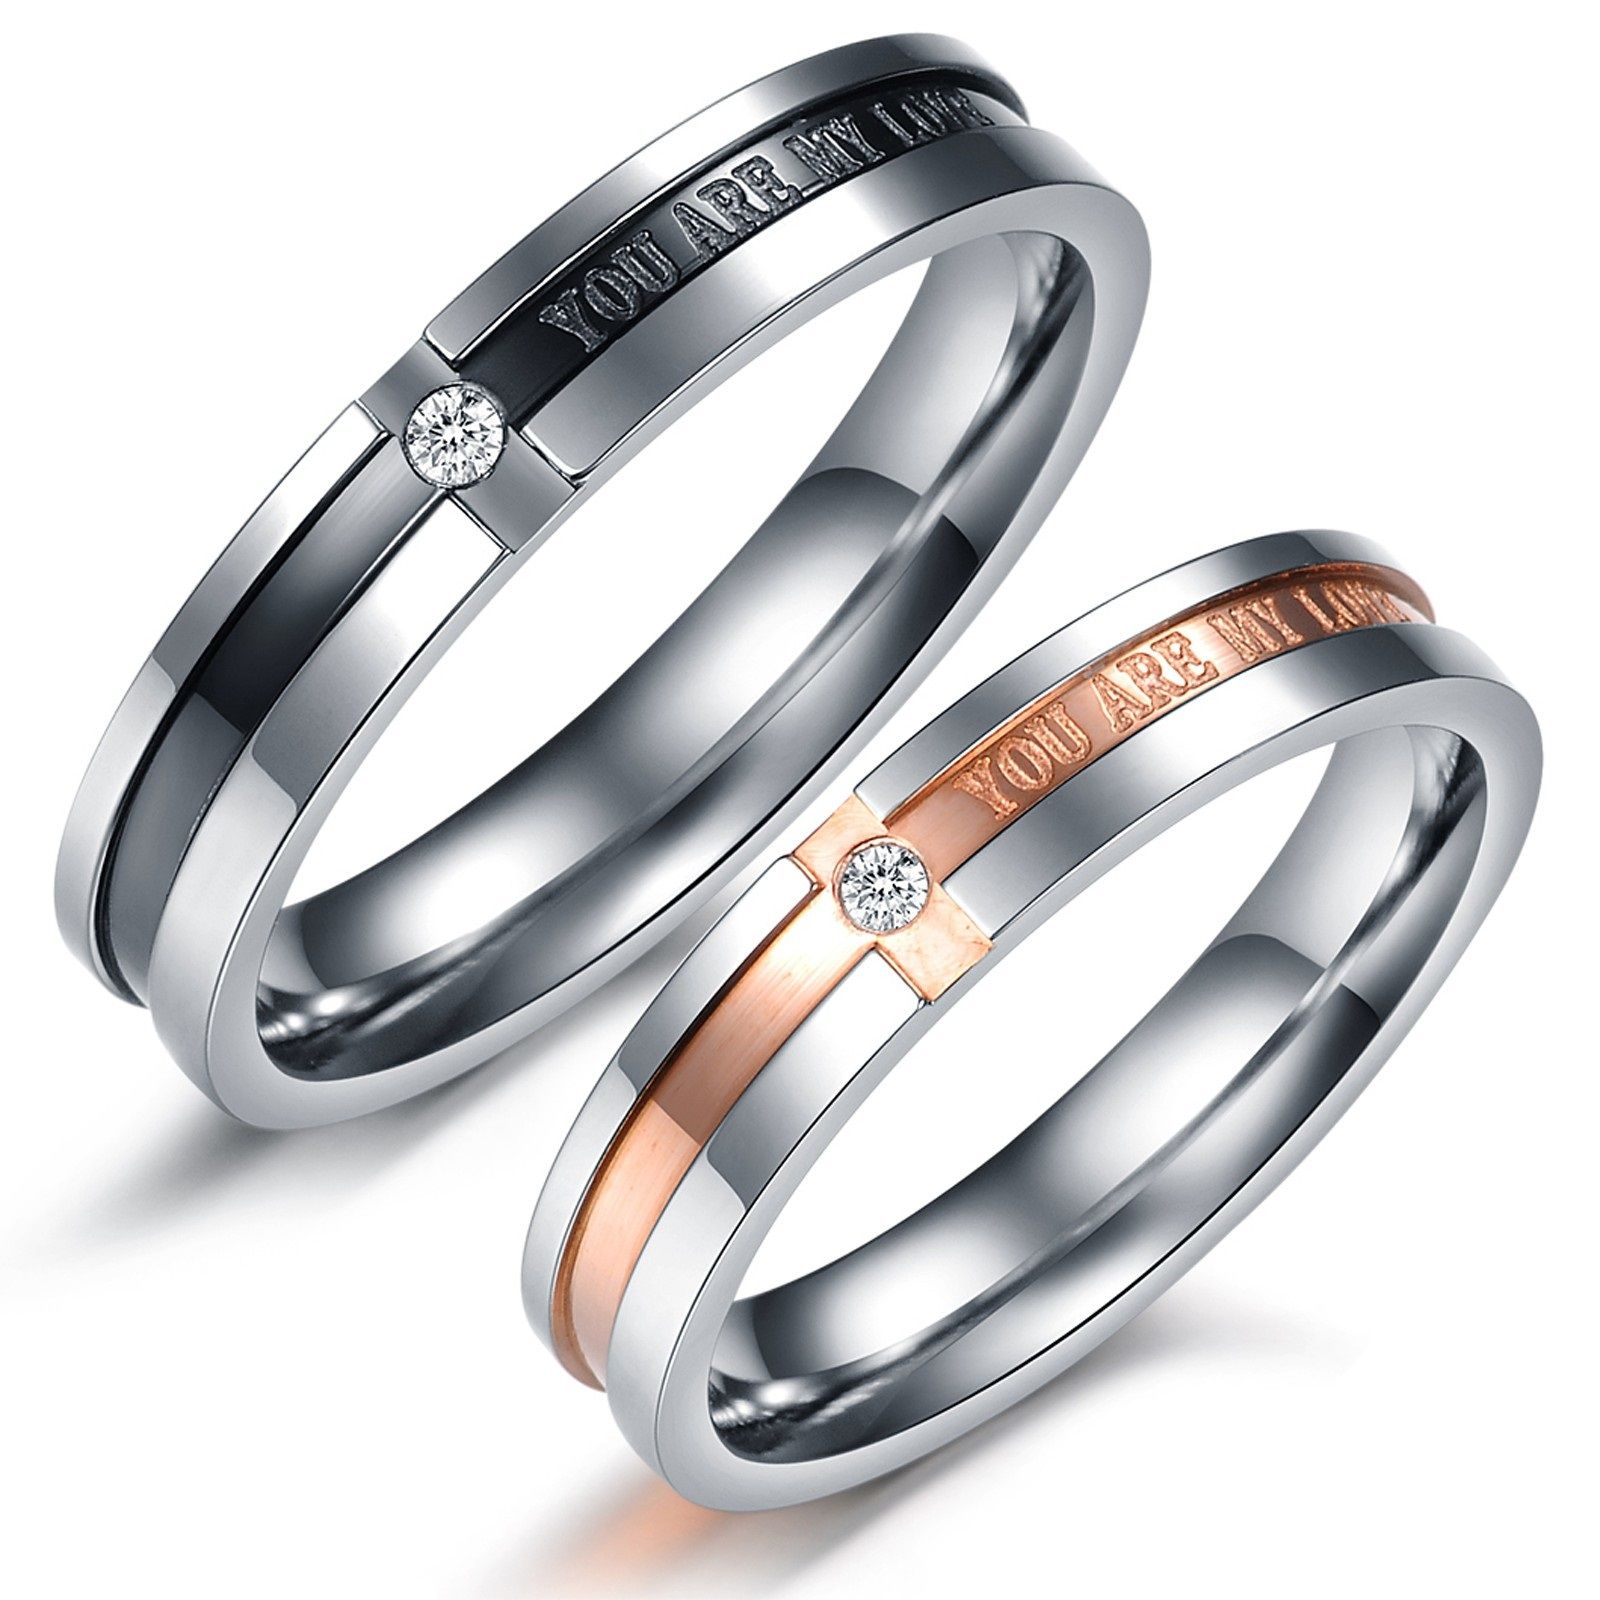 couples wedding bands Simple bu elegant couples rings Matching Couple Titanium Steel Engagement Promise Ring Wedding Bands